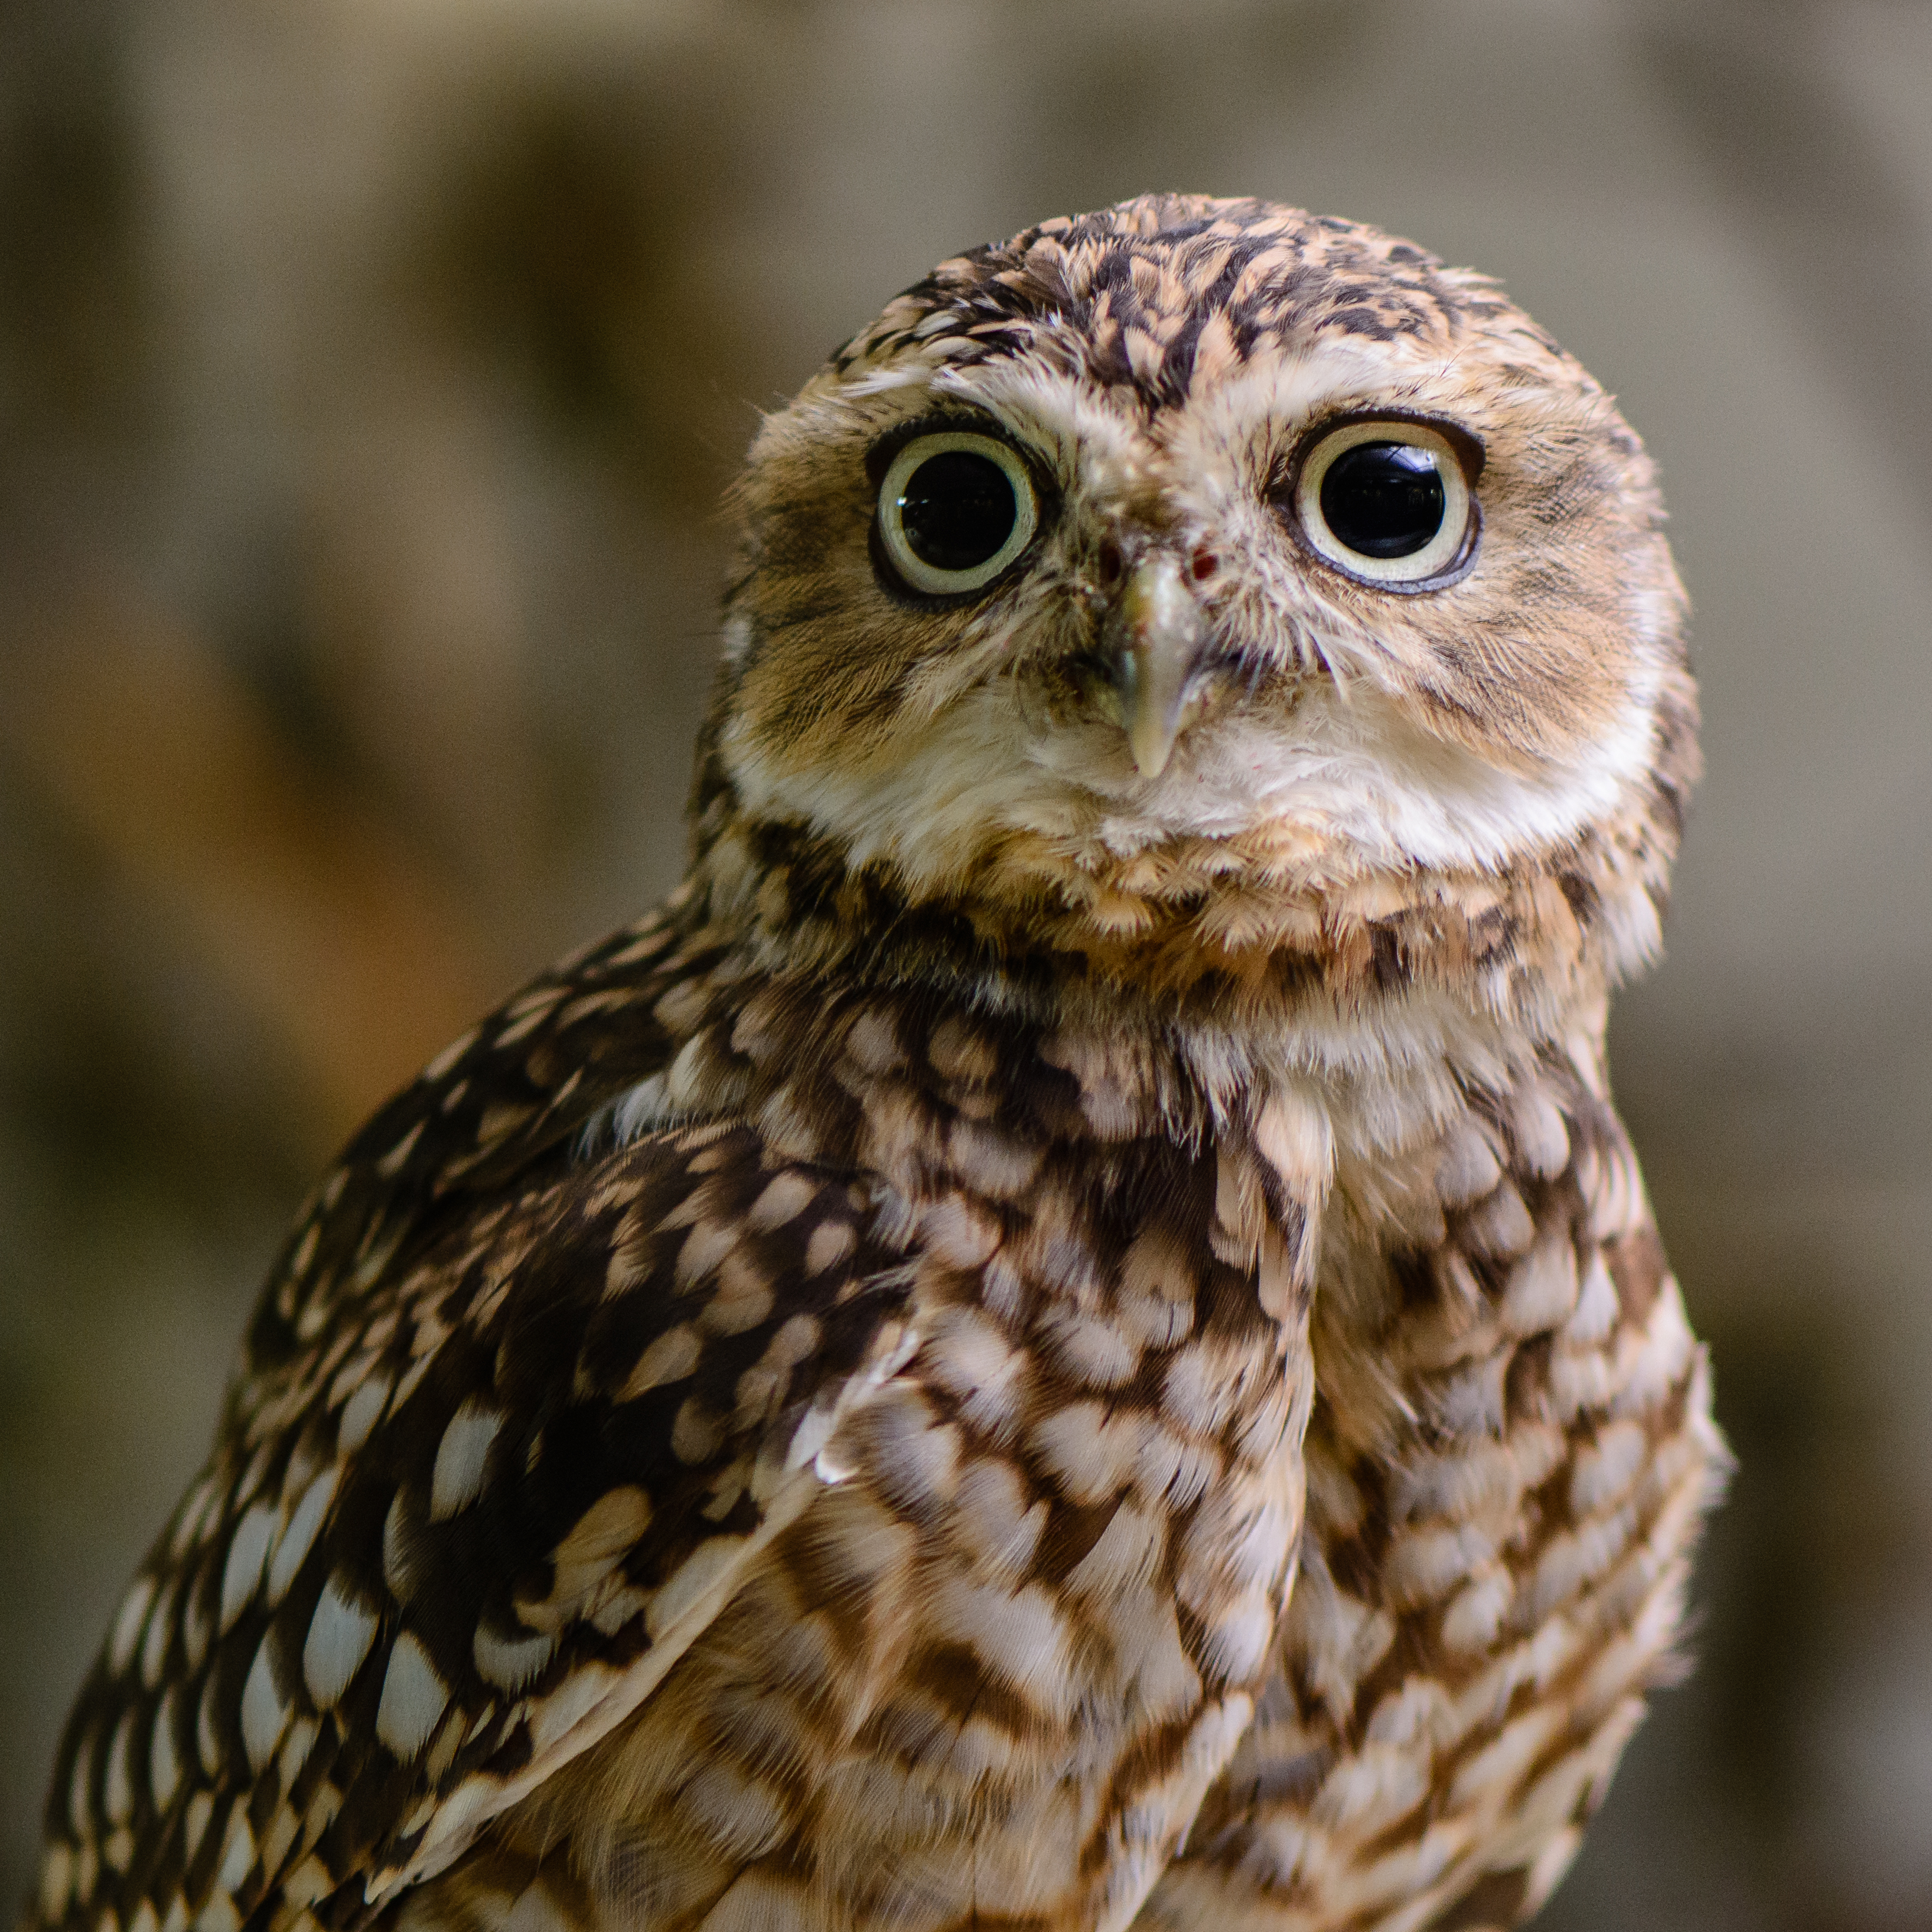 Fight against Illegal trade of Owls in India for use in pet industry and black magic